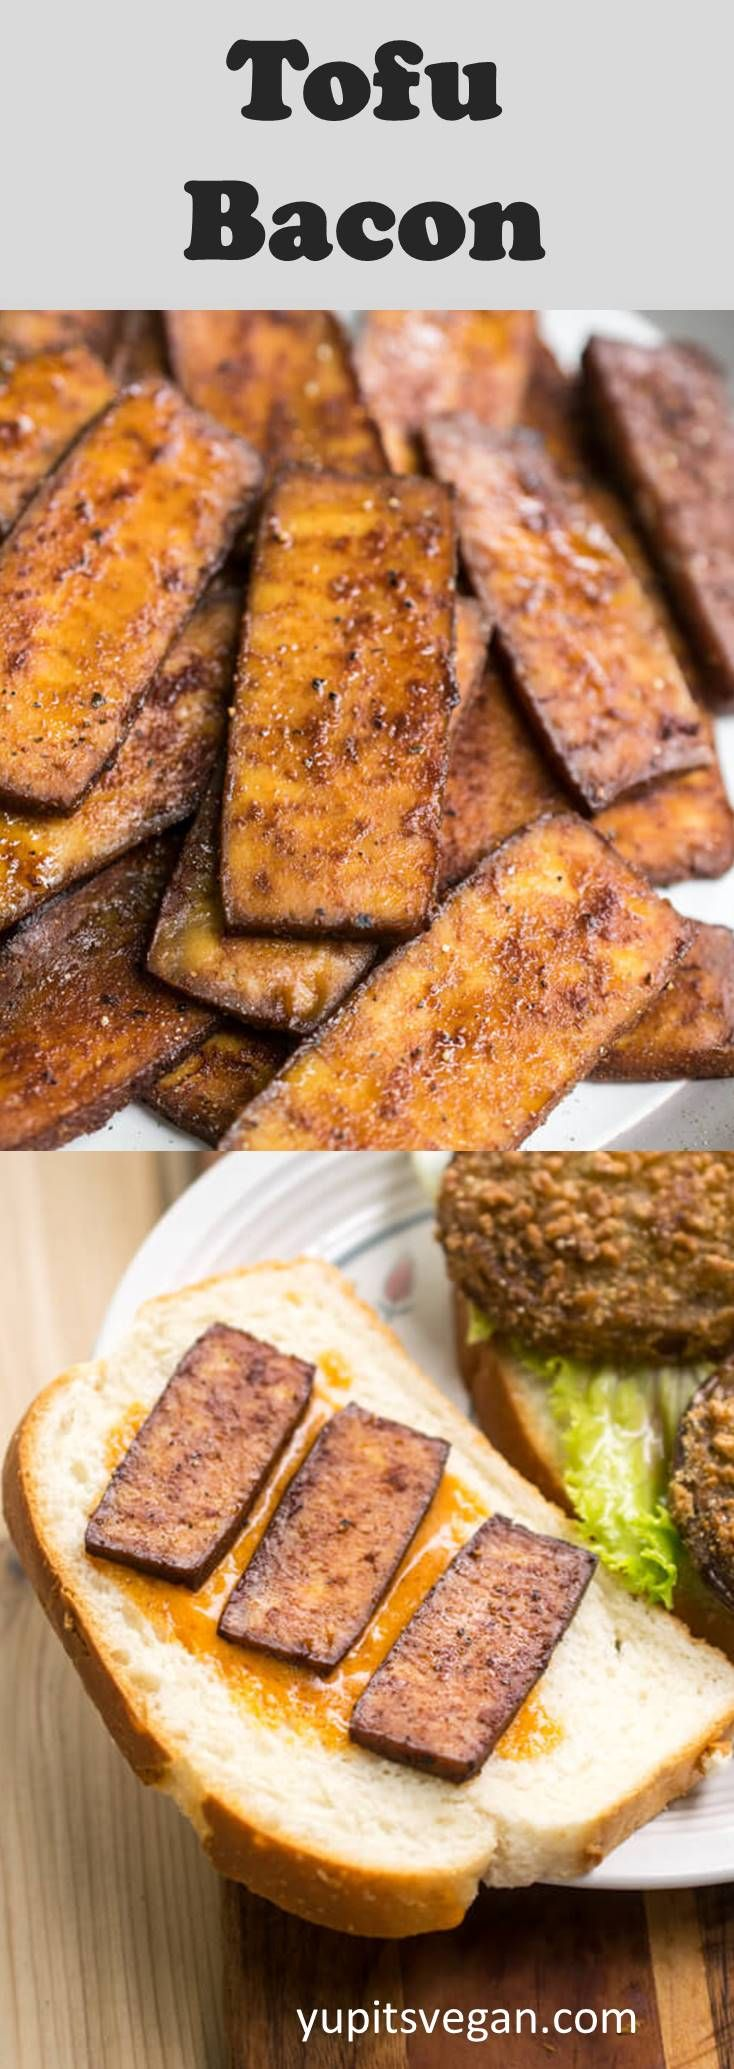 30 Minute Tofu Bacon A Chewy Smoky Savory High Protein Vegan Bacon Substitute That S Great On Blt Sandwiche Vegetarian Bacon Tofu Recipes Vegan Vegan Bacon